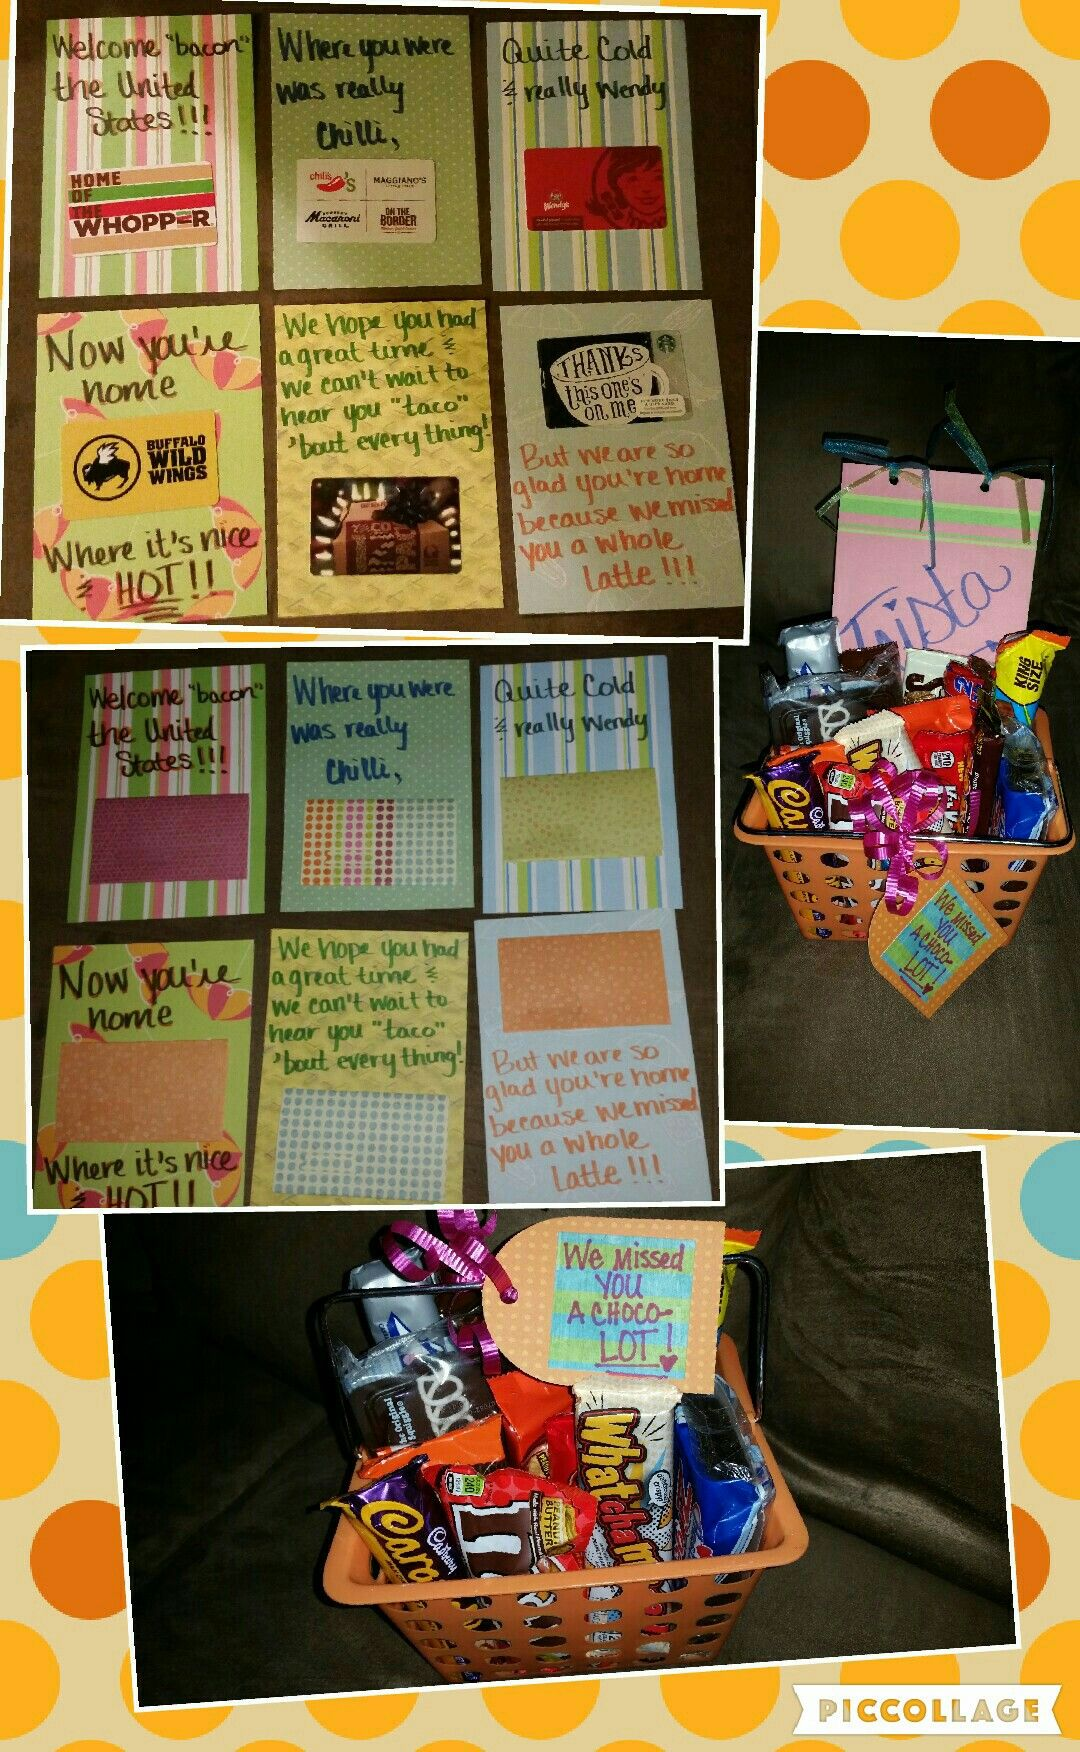 Welcome Home Gift Diy Card With Gift Cards And Chocolate Basket